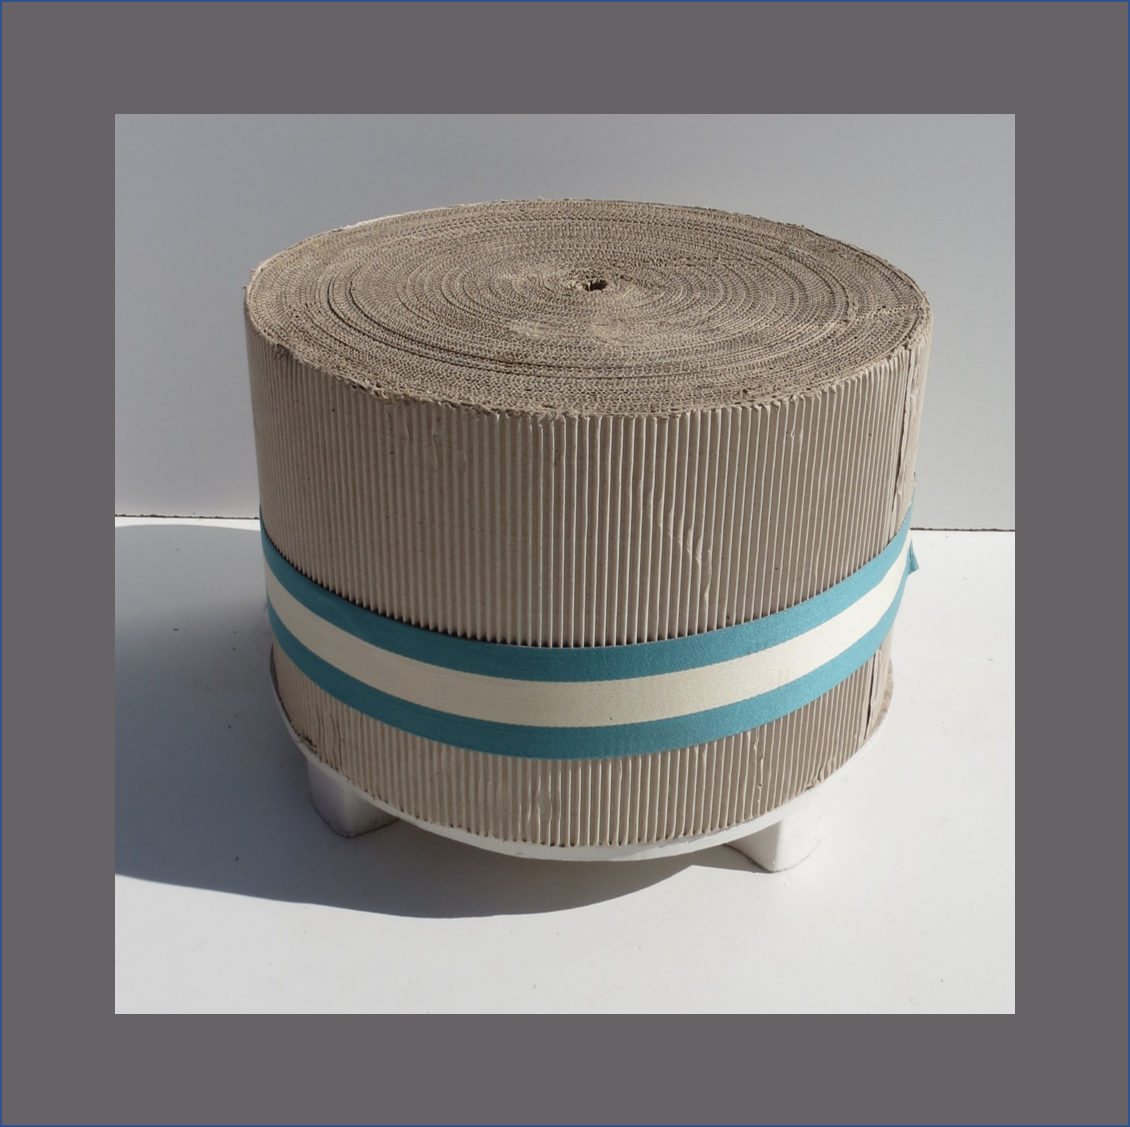 corrugated-card-board-ottoman-round